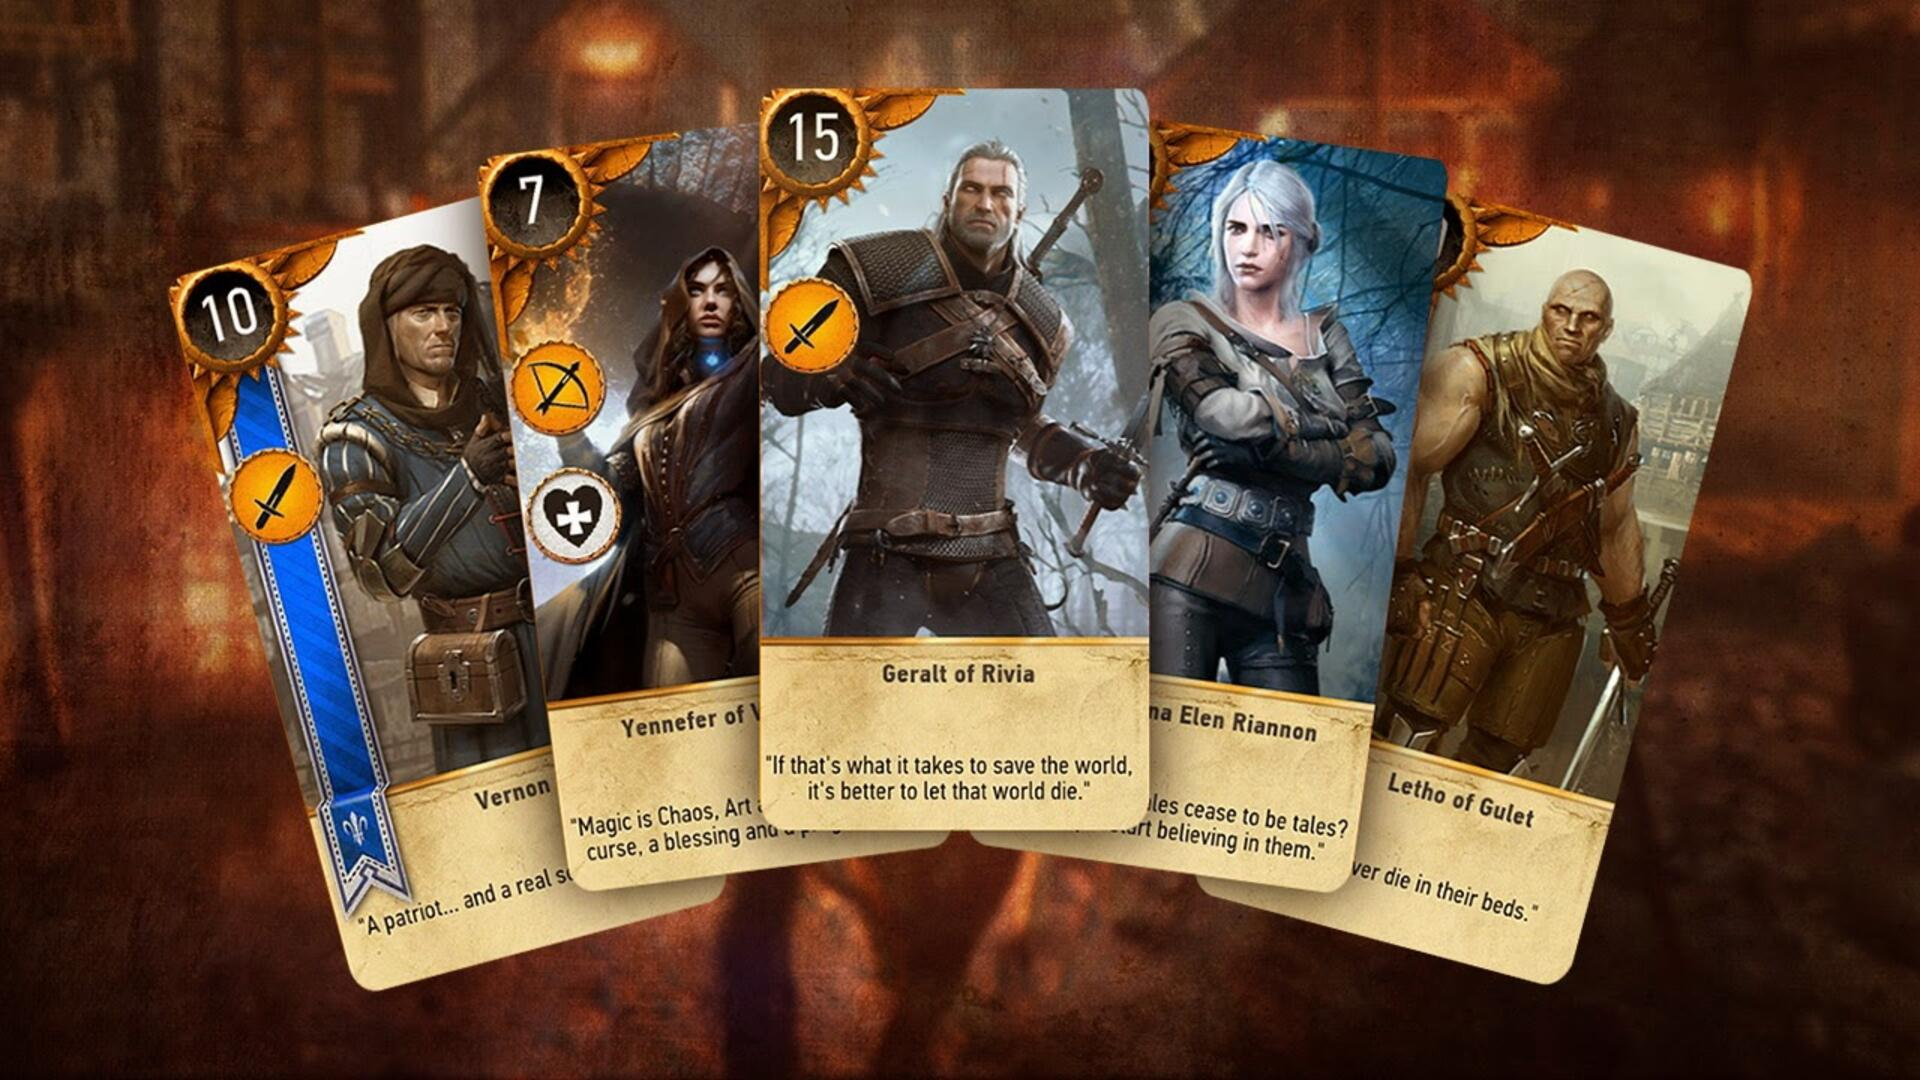 Gwent Beta Guide - How to Enter the Beta, How to Unlock Cards, Brand New Story Mode - Everything We Know about this Witcher 3 Spin-off